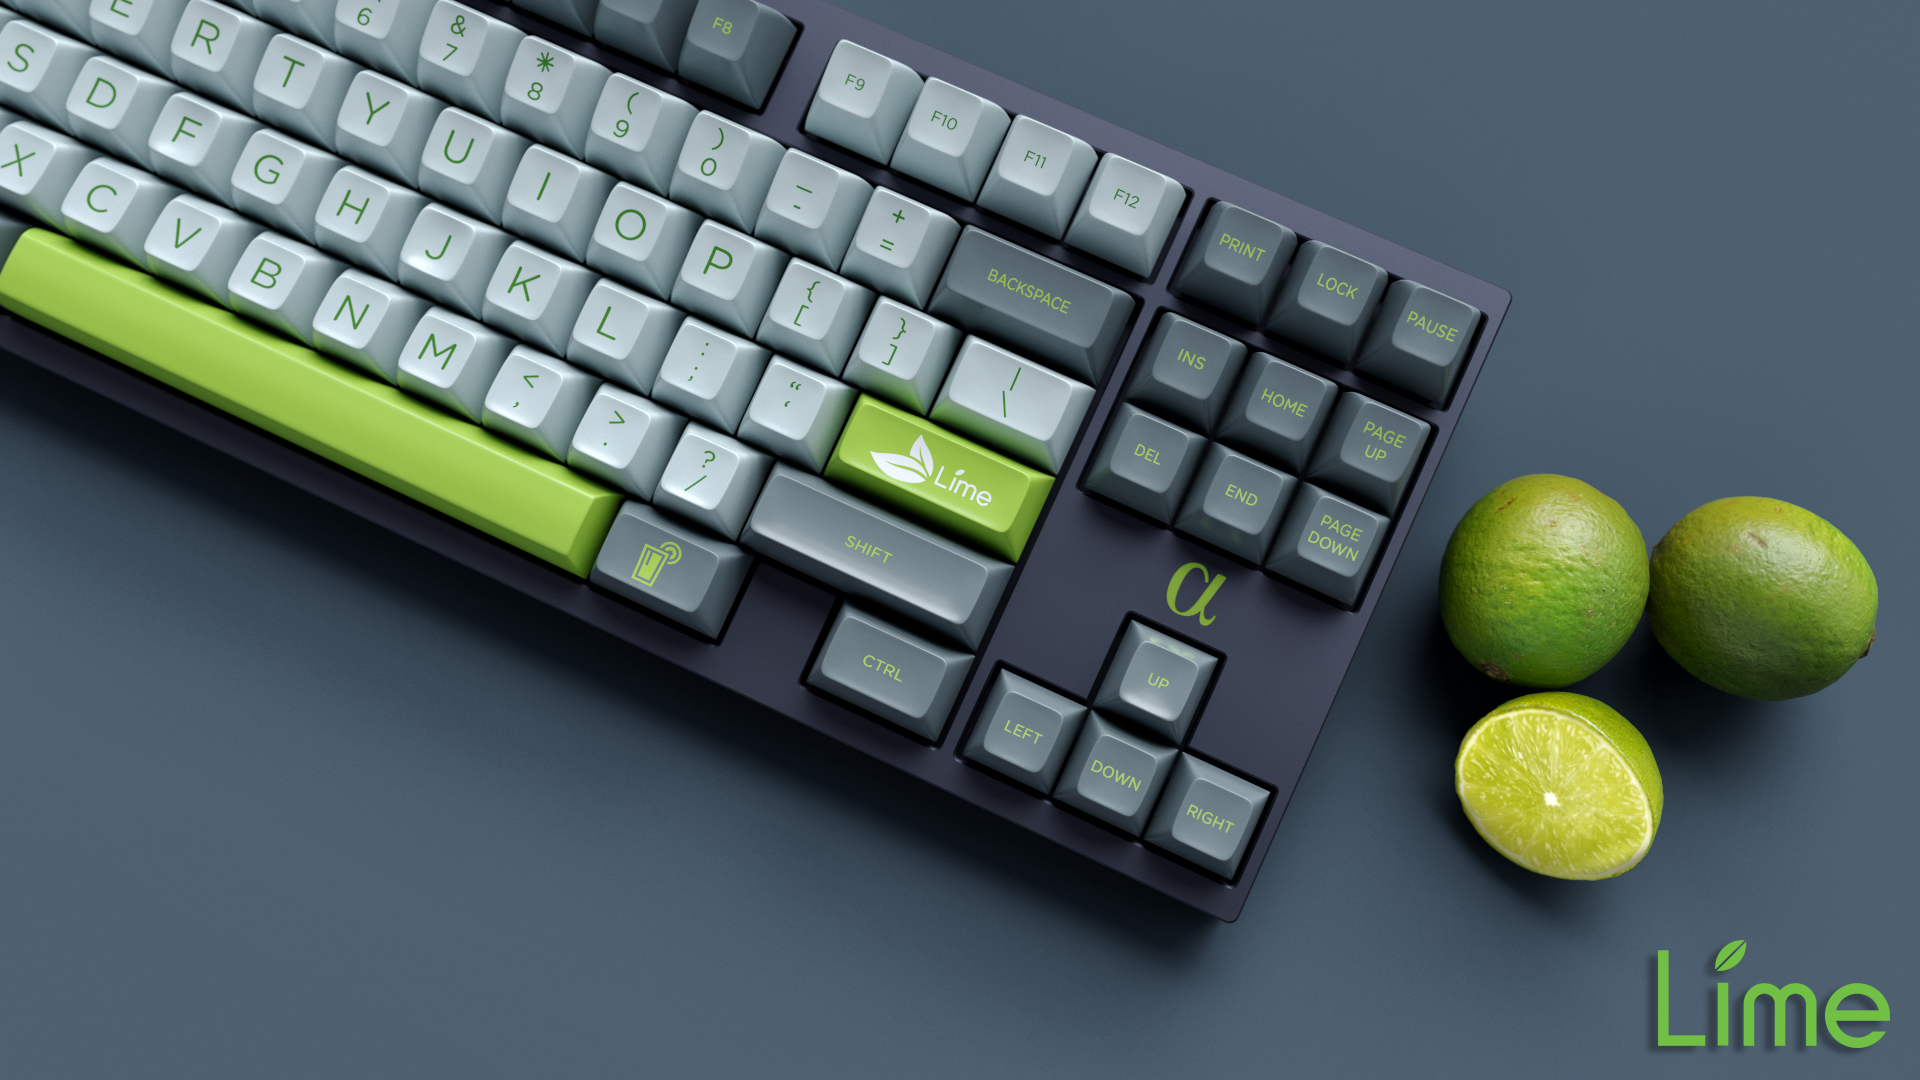 SA Lime | keyset design by kingnestea